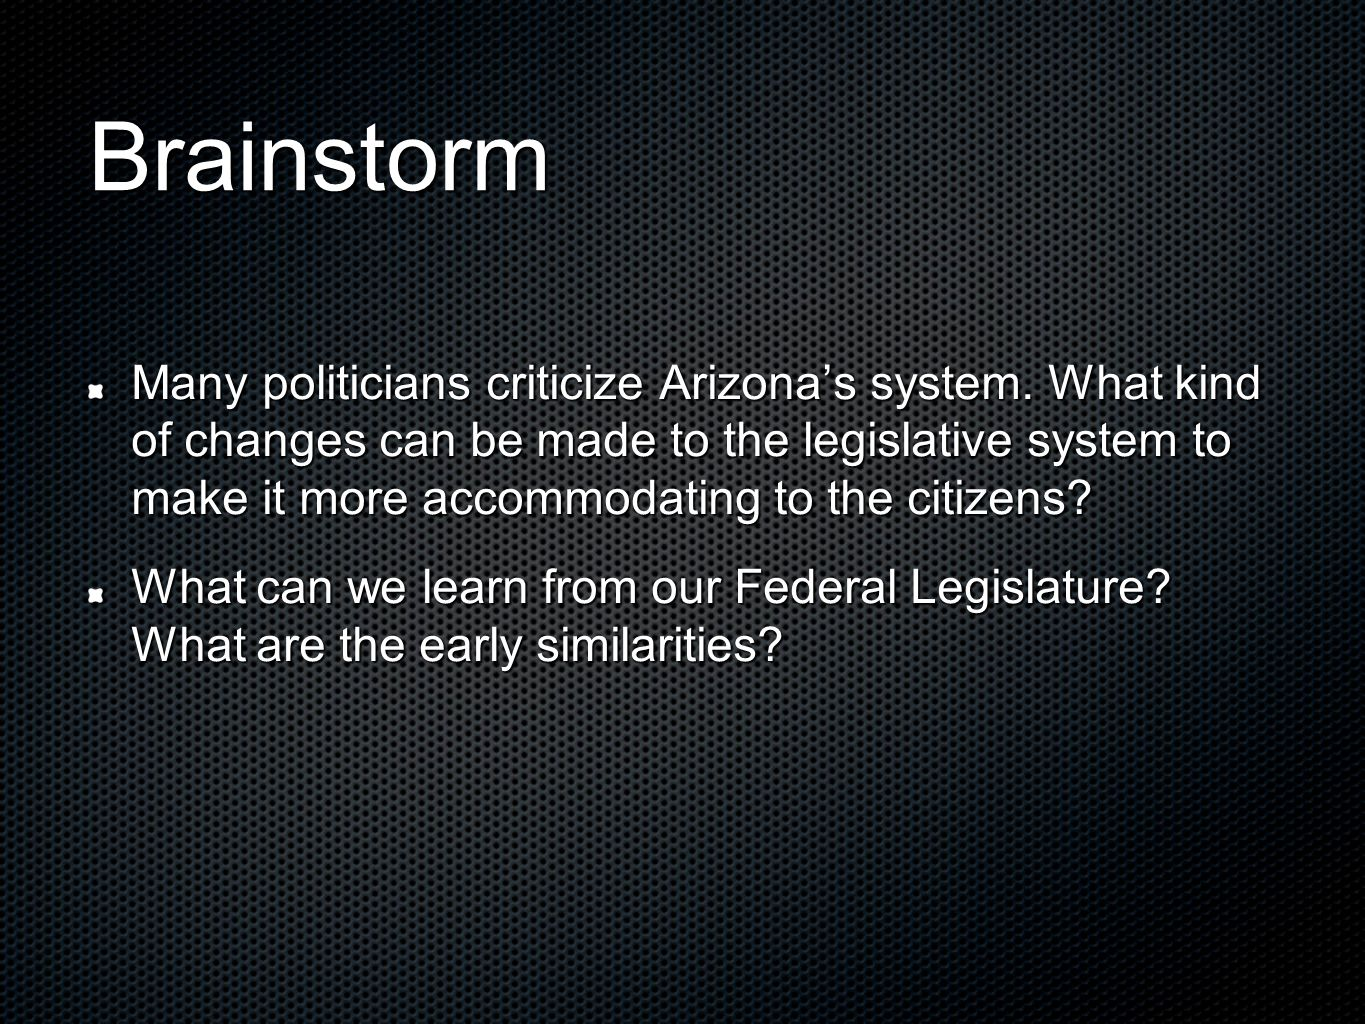 Brainstorm Many politicians criticize Arizonas system. What kind of changes can be made to the legislative system to make it more accommodating to the